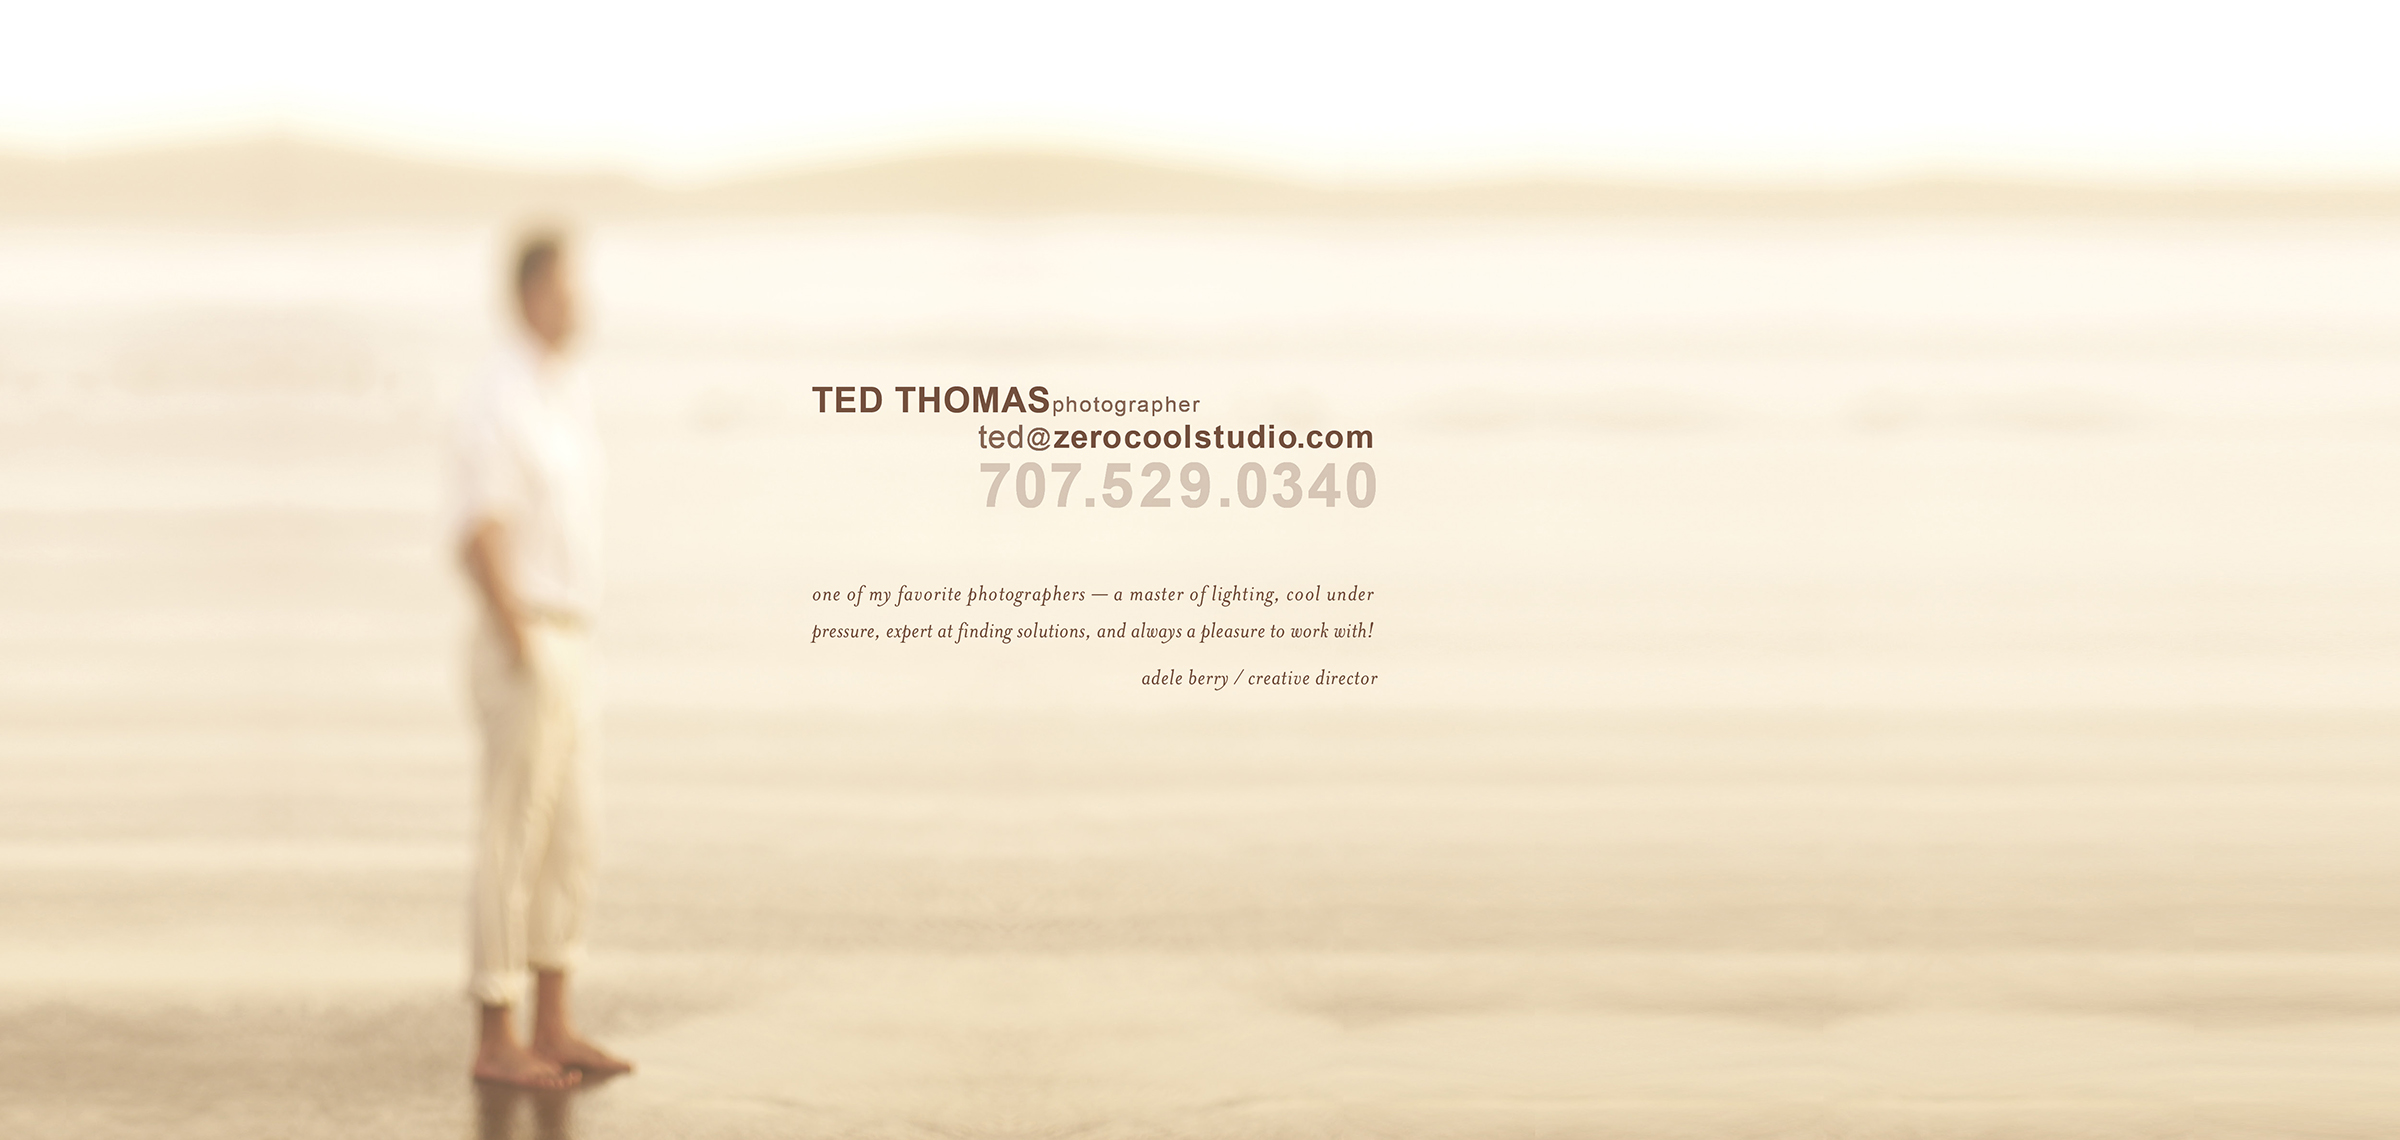 Contact Ted Thomas